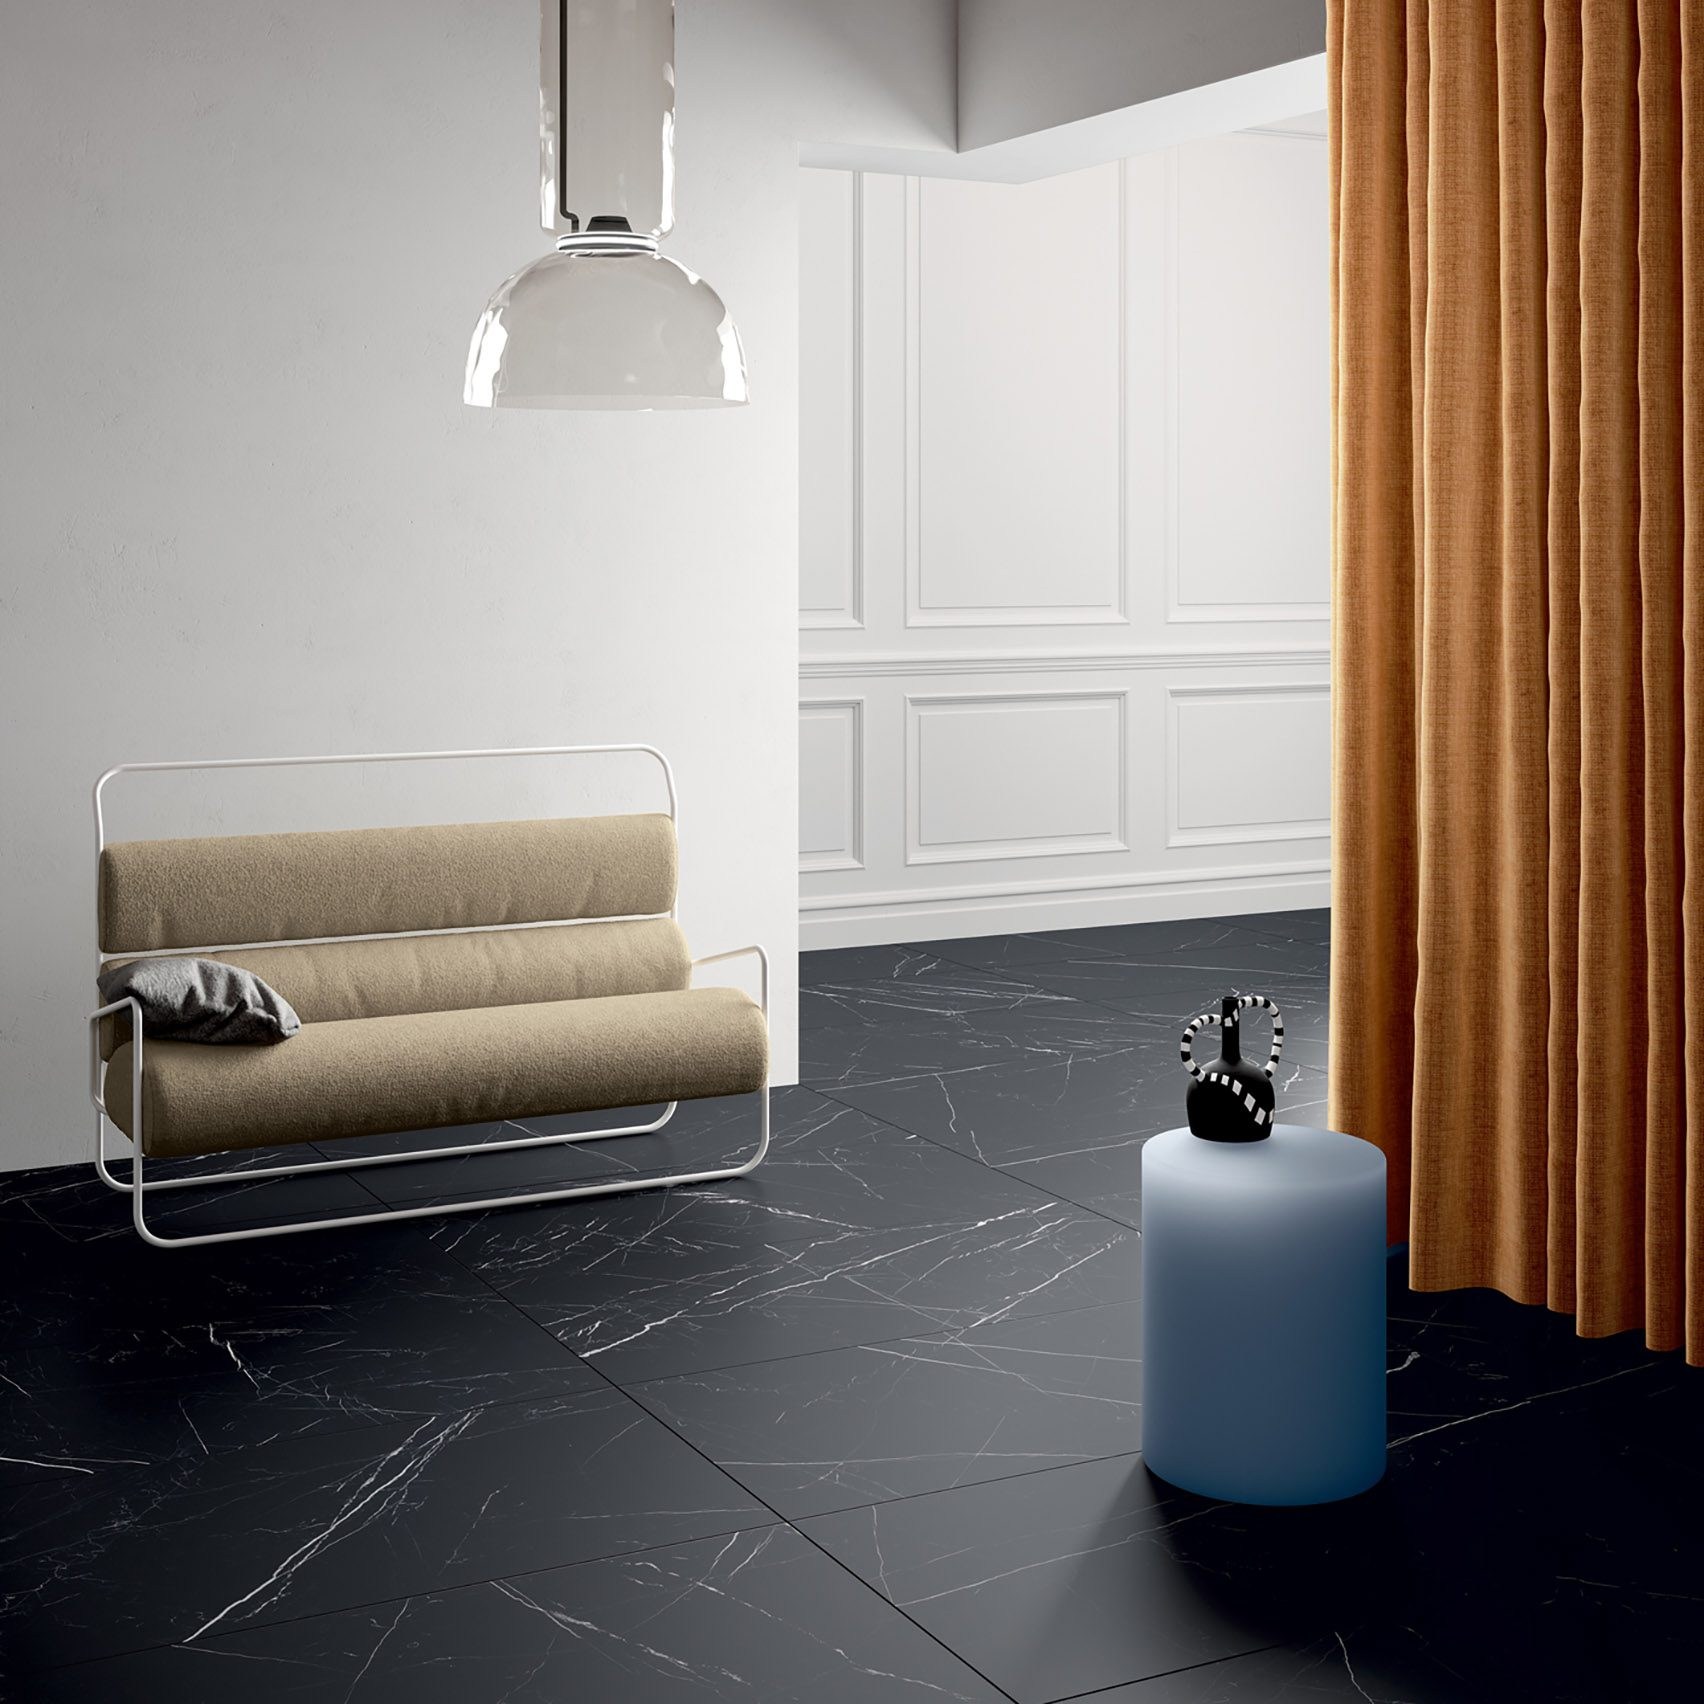 Marble Lab tile collection by Fiandre Architectural Surfaces